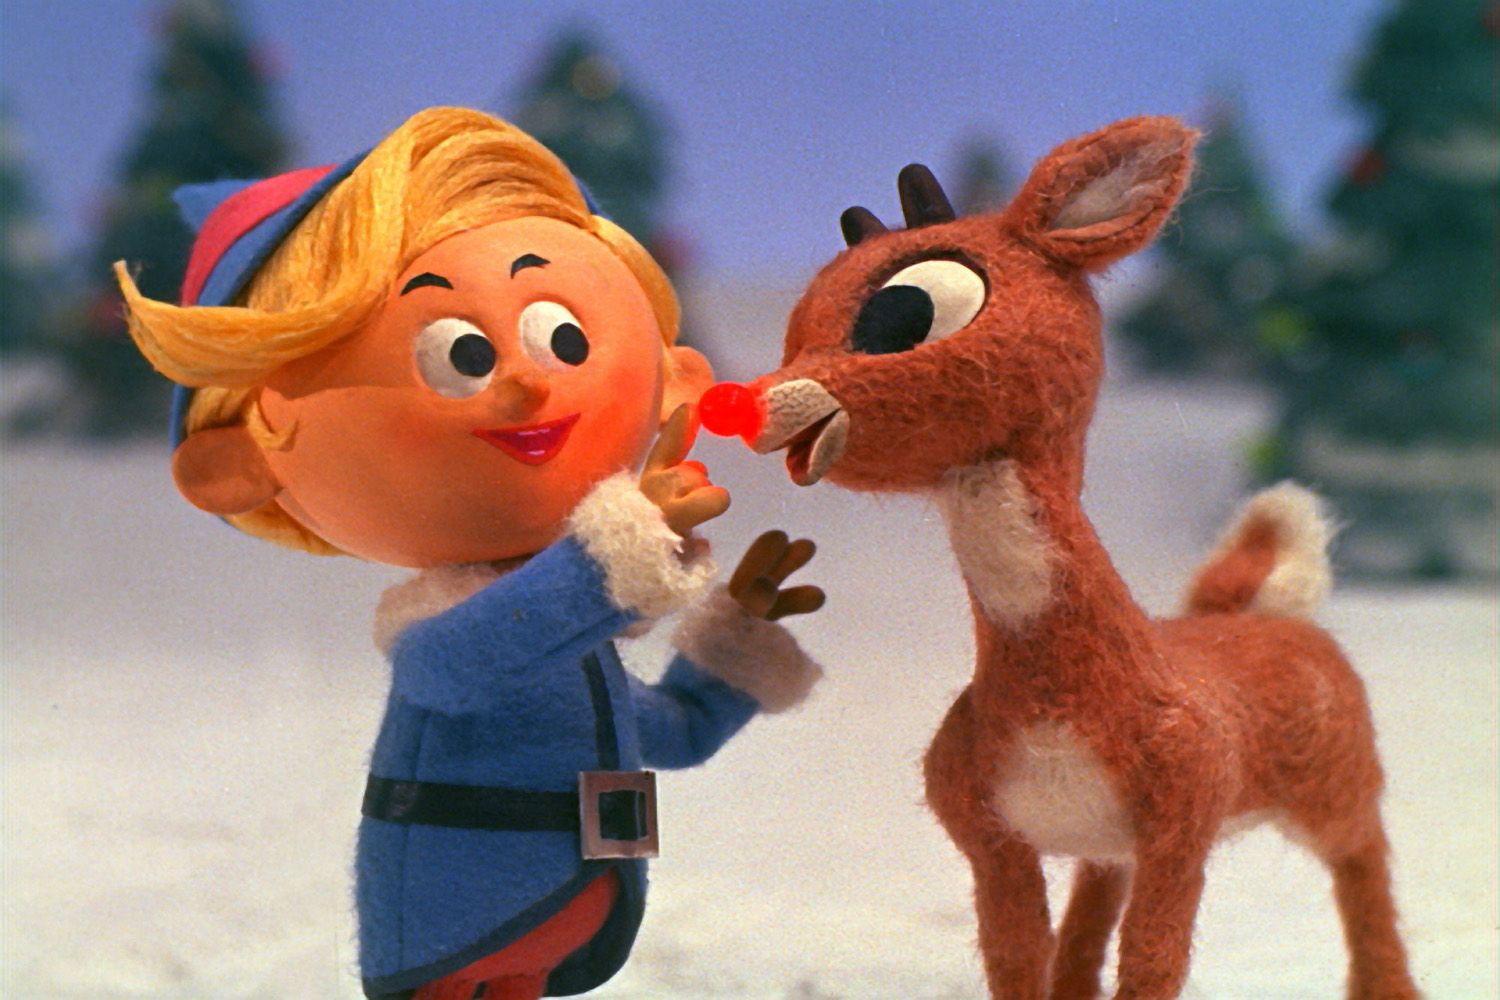 25 Best Christmas Movies Of All Time to Watch this Holiday Season